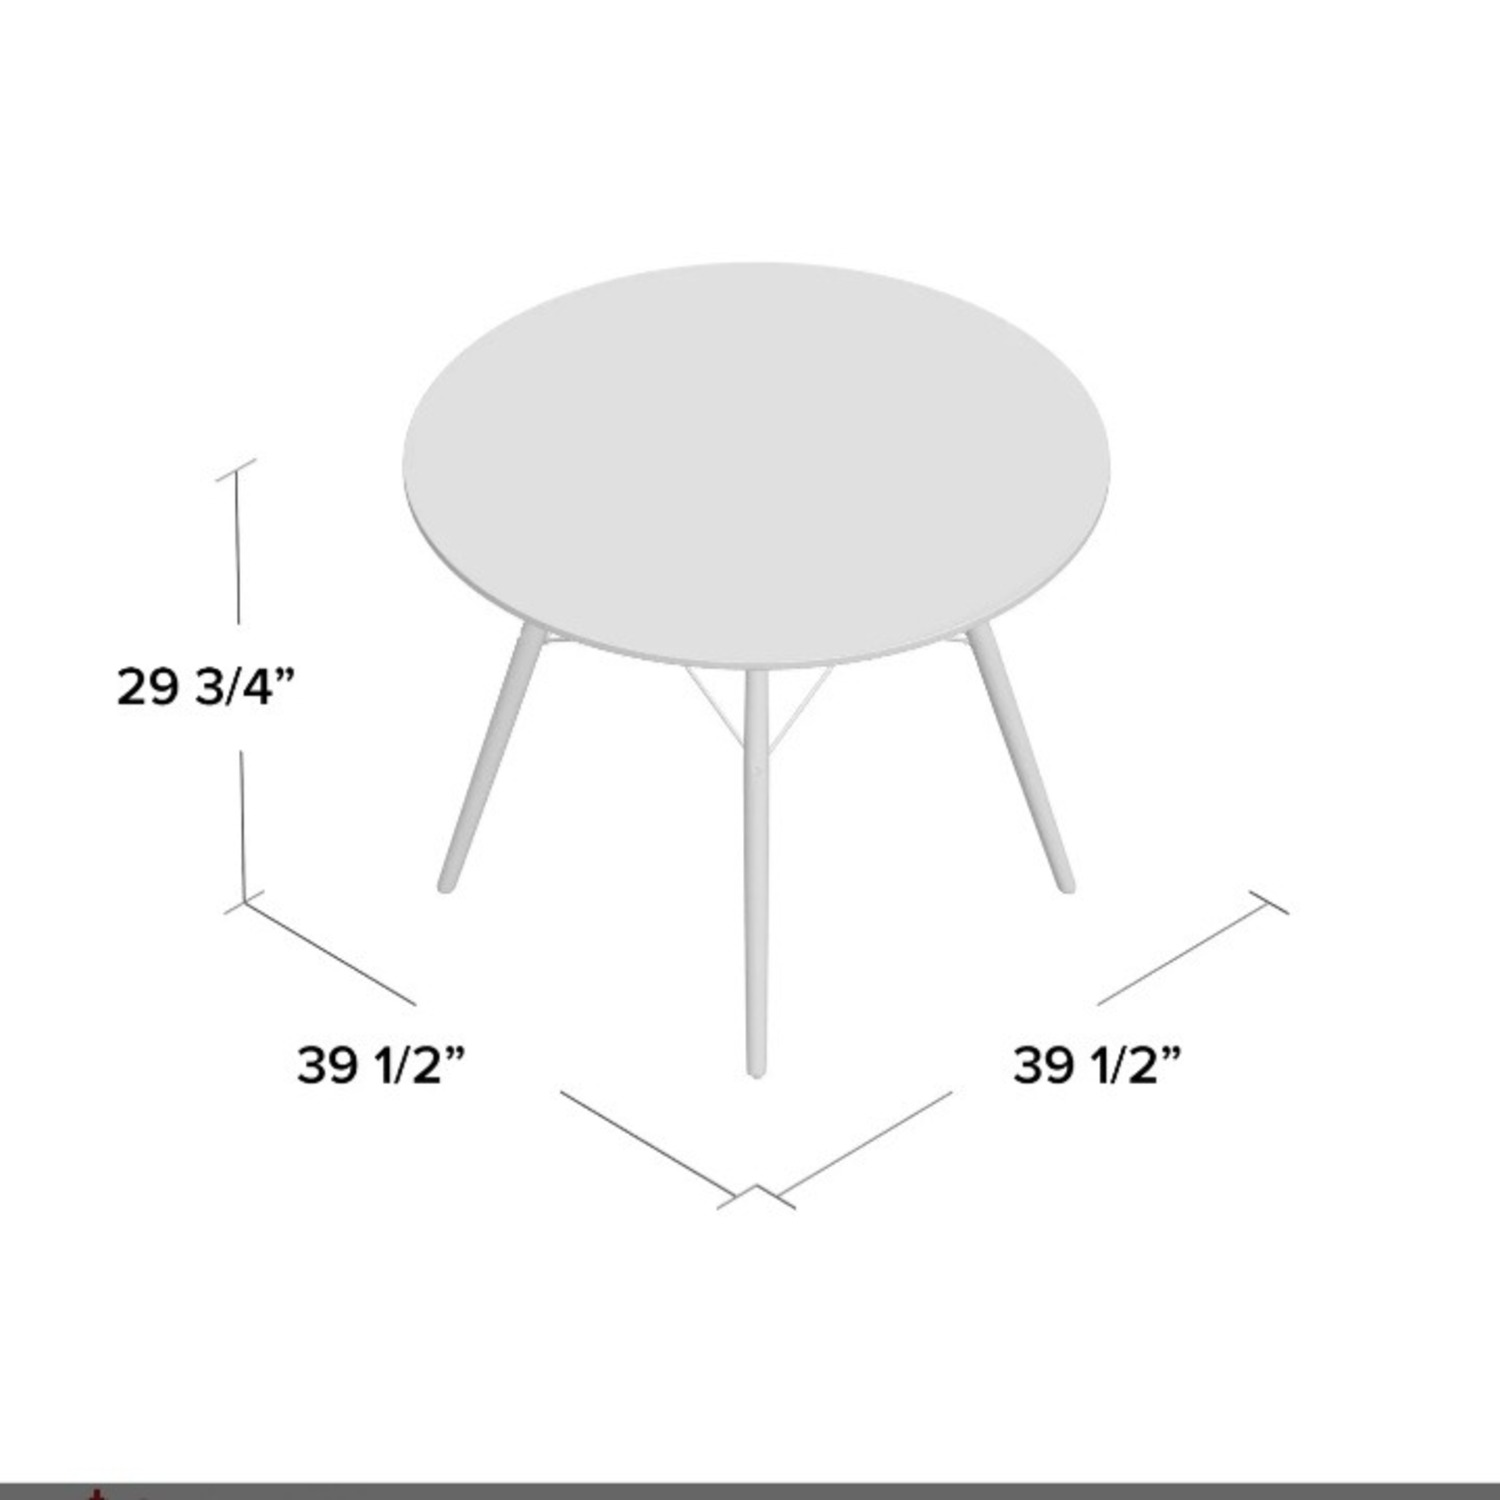 Wayfair Boardway Round Dining Room Table - image-4